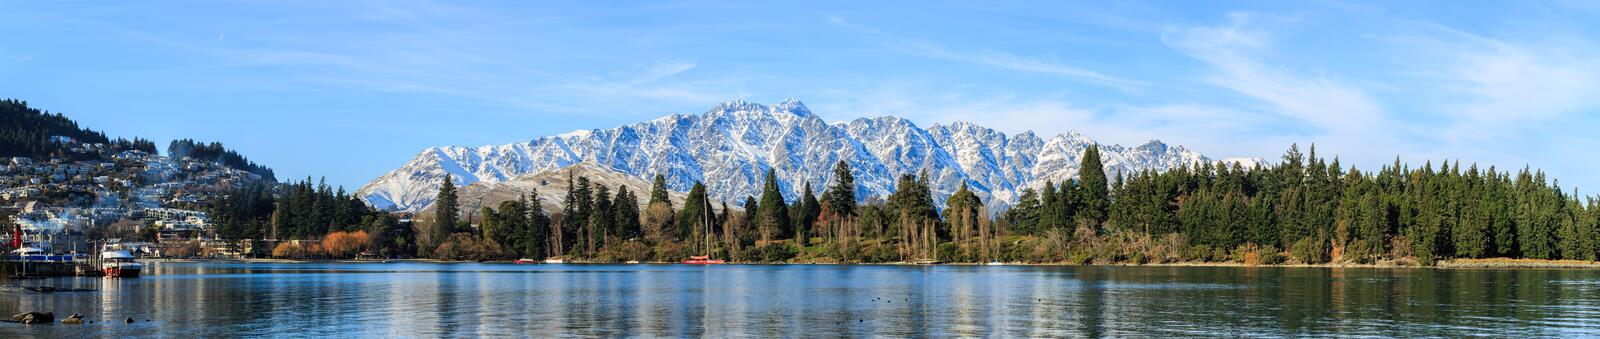 Panoramic view of Queenstown. Queenstown adventure capital of the world, New Zealand stock photo